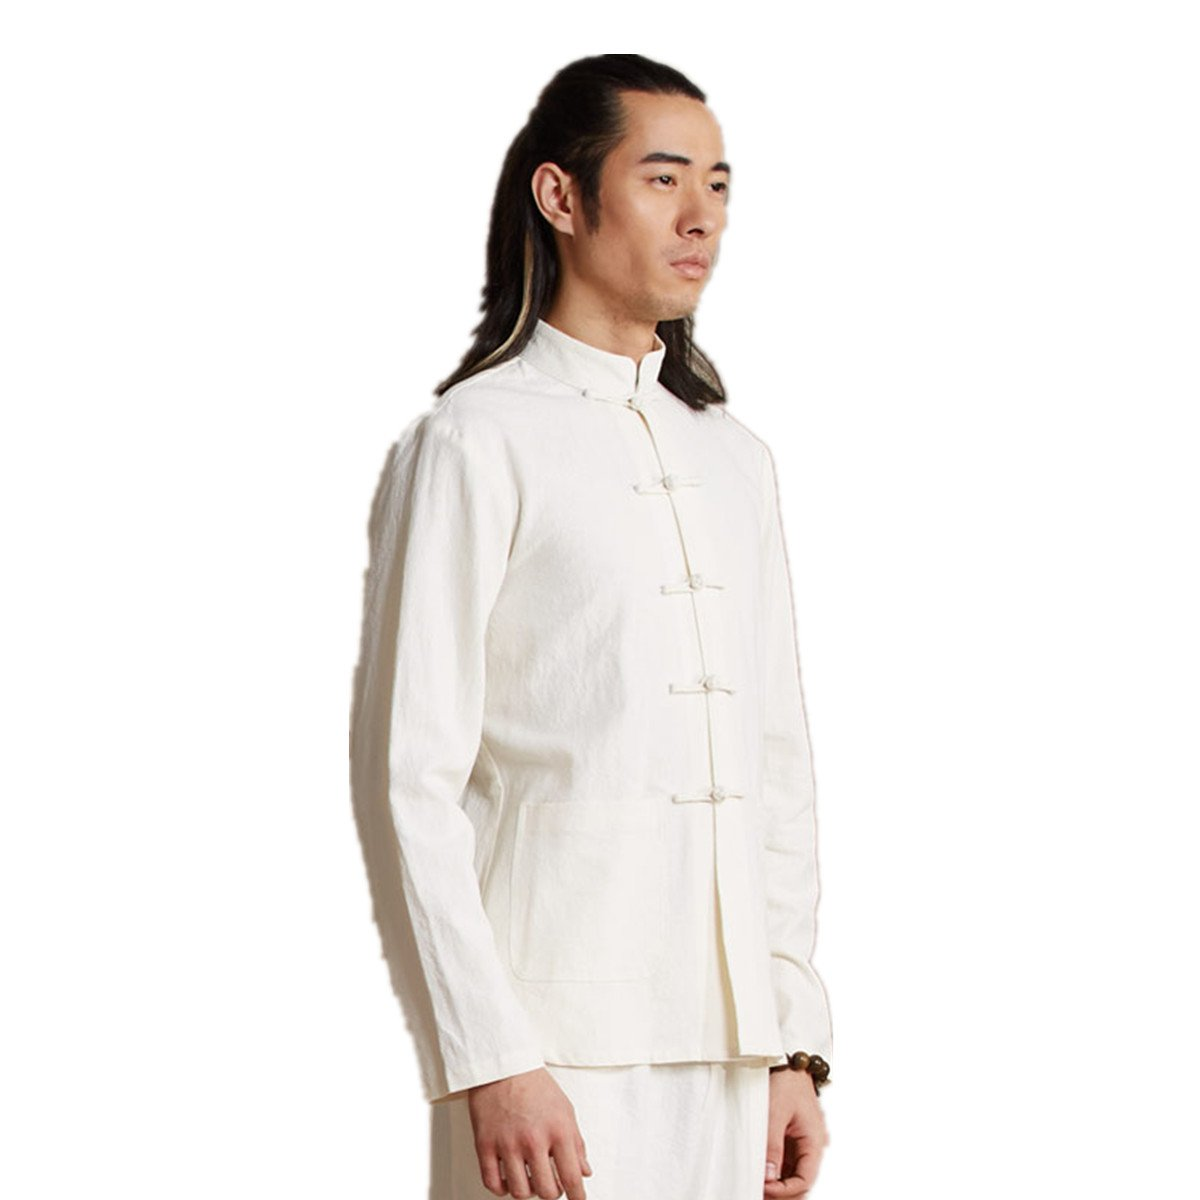 WEISAN Men Chinese Retro Stand Collar Tang Suit Cotton Linen Kung Fu Costume Jacket by WEISAN (Image #1)